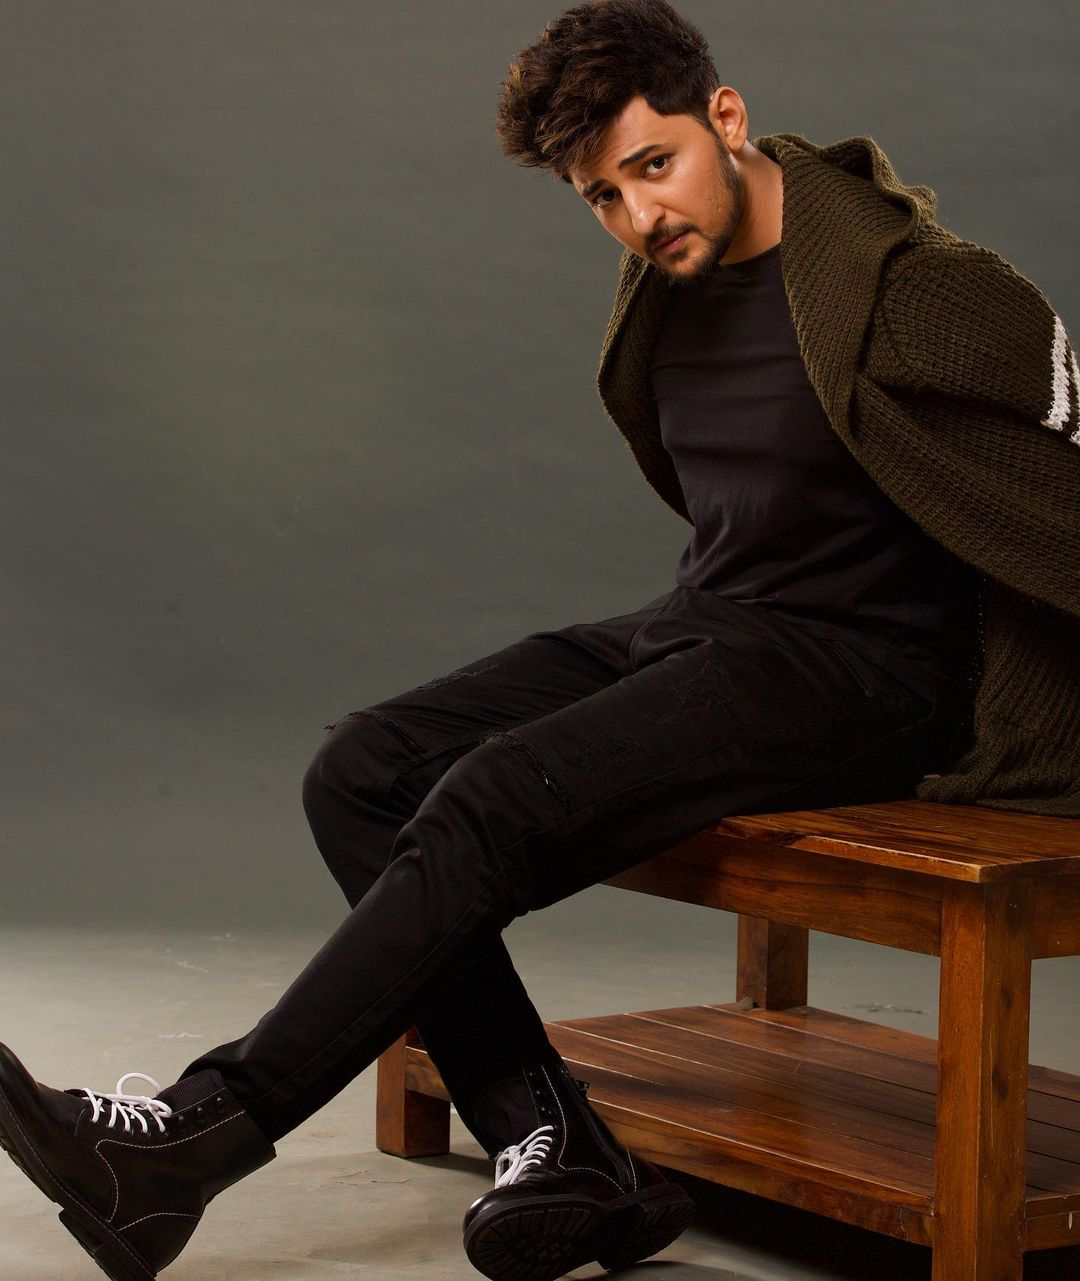 Darshan Raval Knows How To Pull Off Black And White Outfit Like A Pro 5